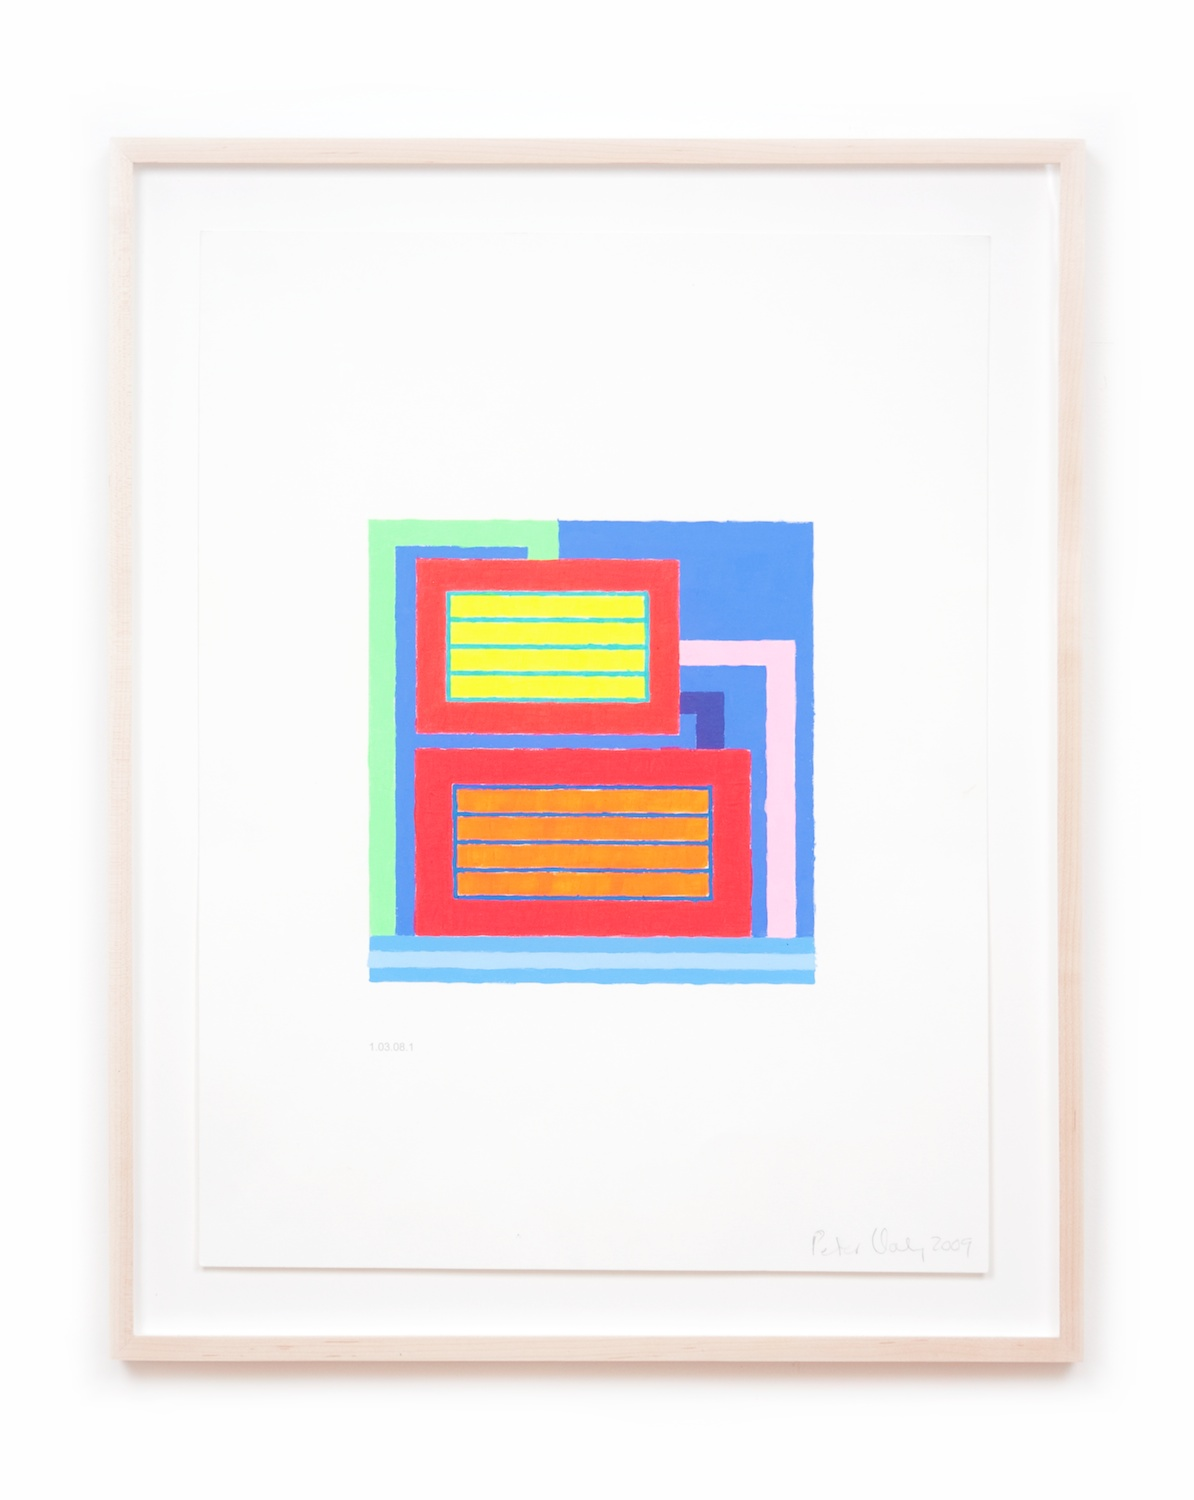 Peter Halley  Untitled  2009 Acrylic and Day-glo acrylic on computer-printed paper 21h x 16w in PH002